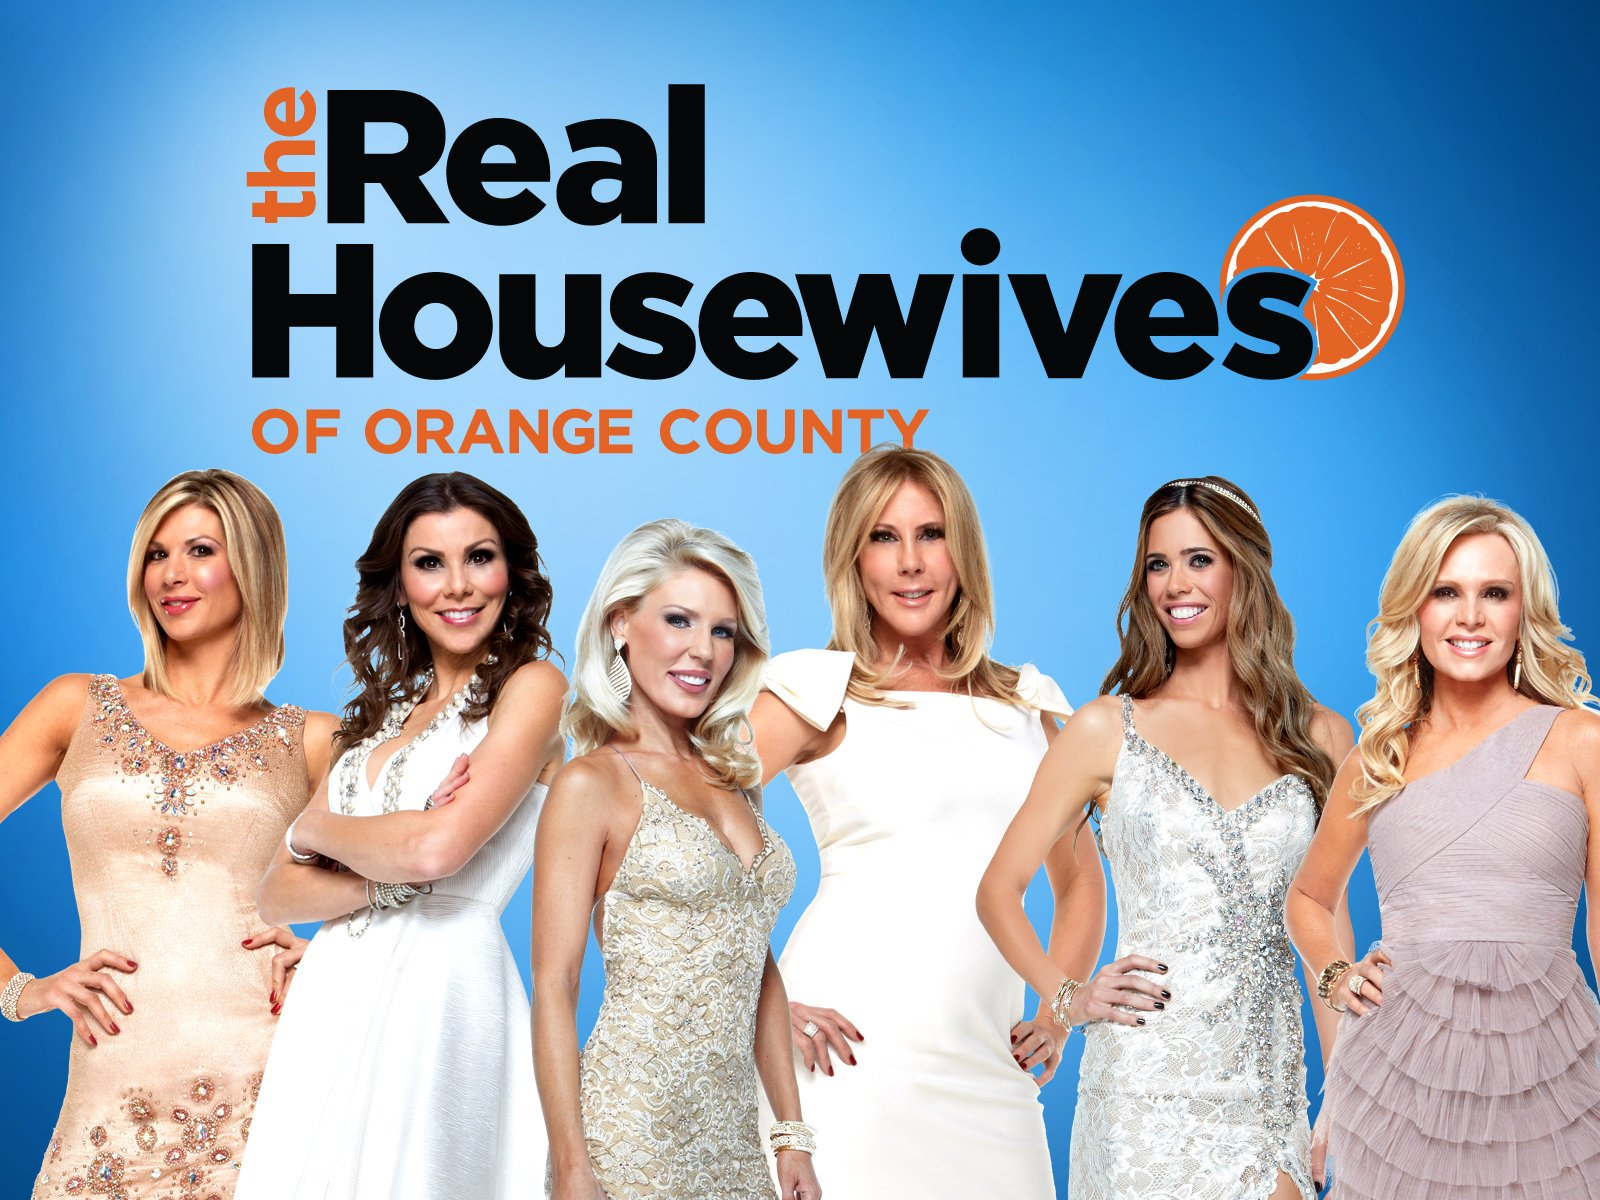 The Real Housewives of Orange County Source: Amazon